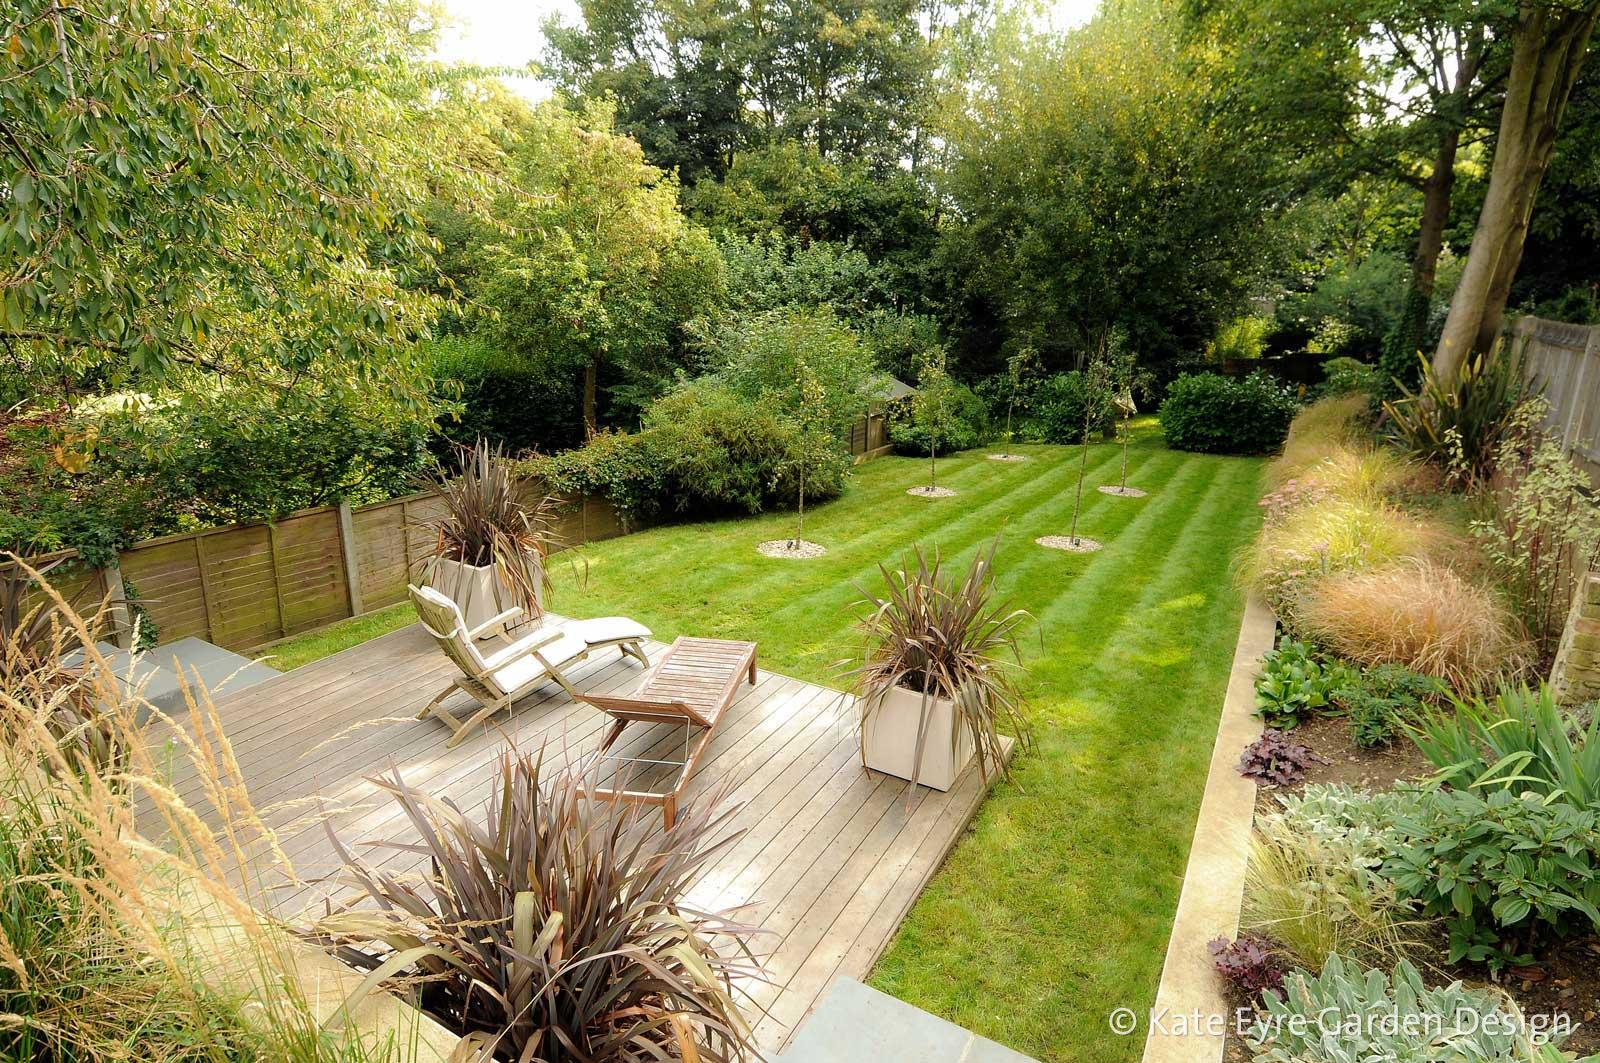 Garden design in crystal palace south east london for Garden design images